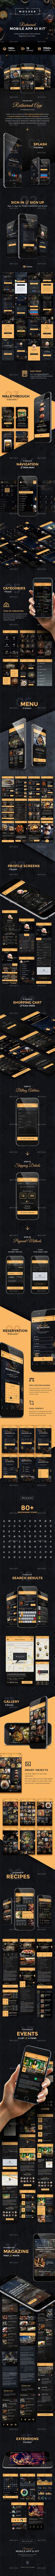 Mosher - Restaurant Mobile App UI Kit (User Interfaces)